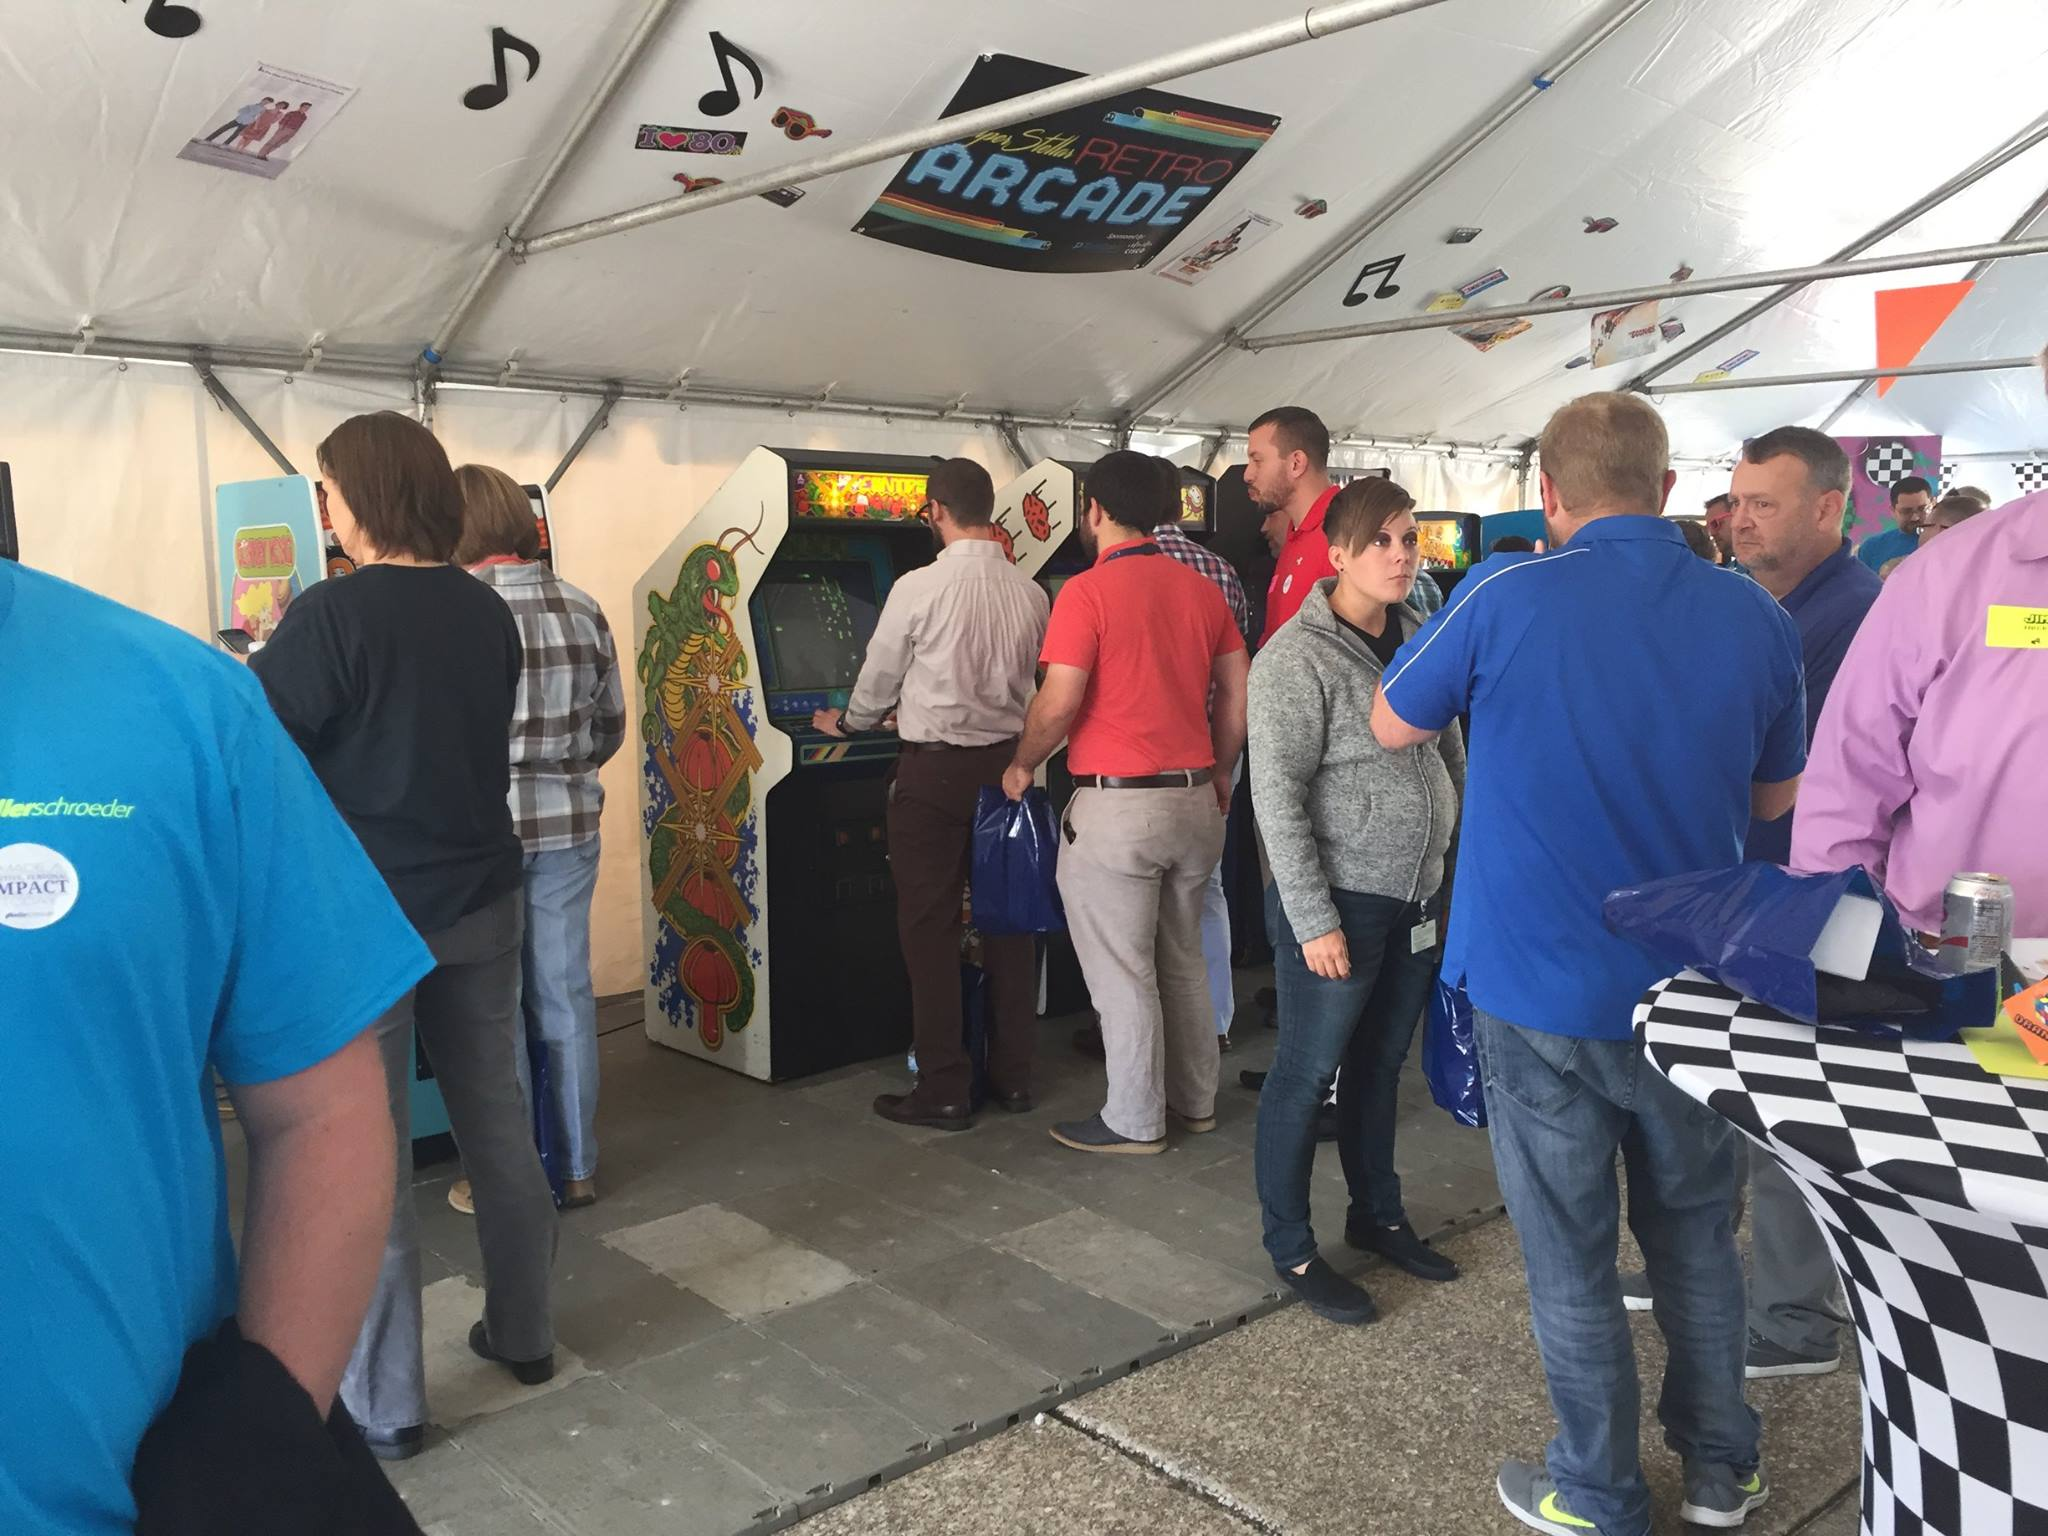 KS Client Appreciation Event Retro Arcade